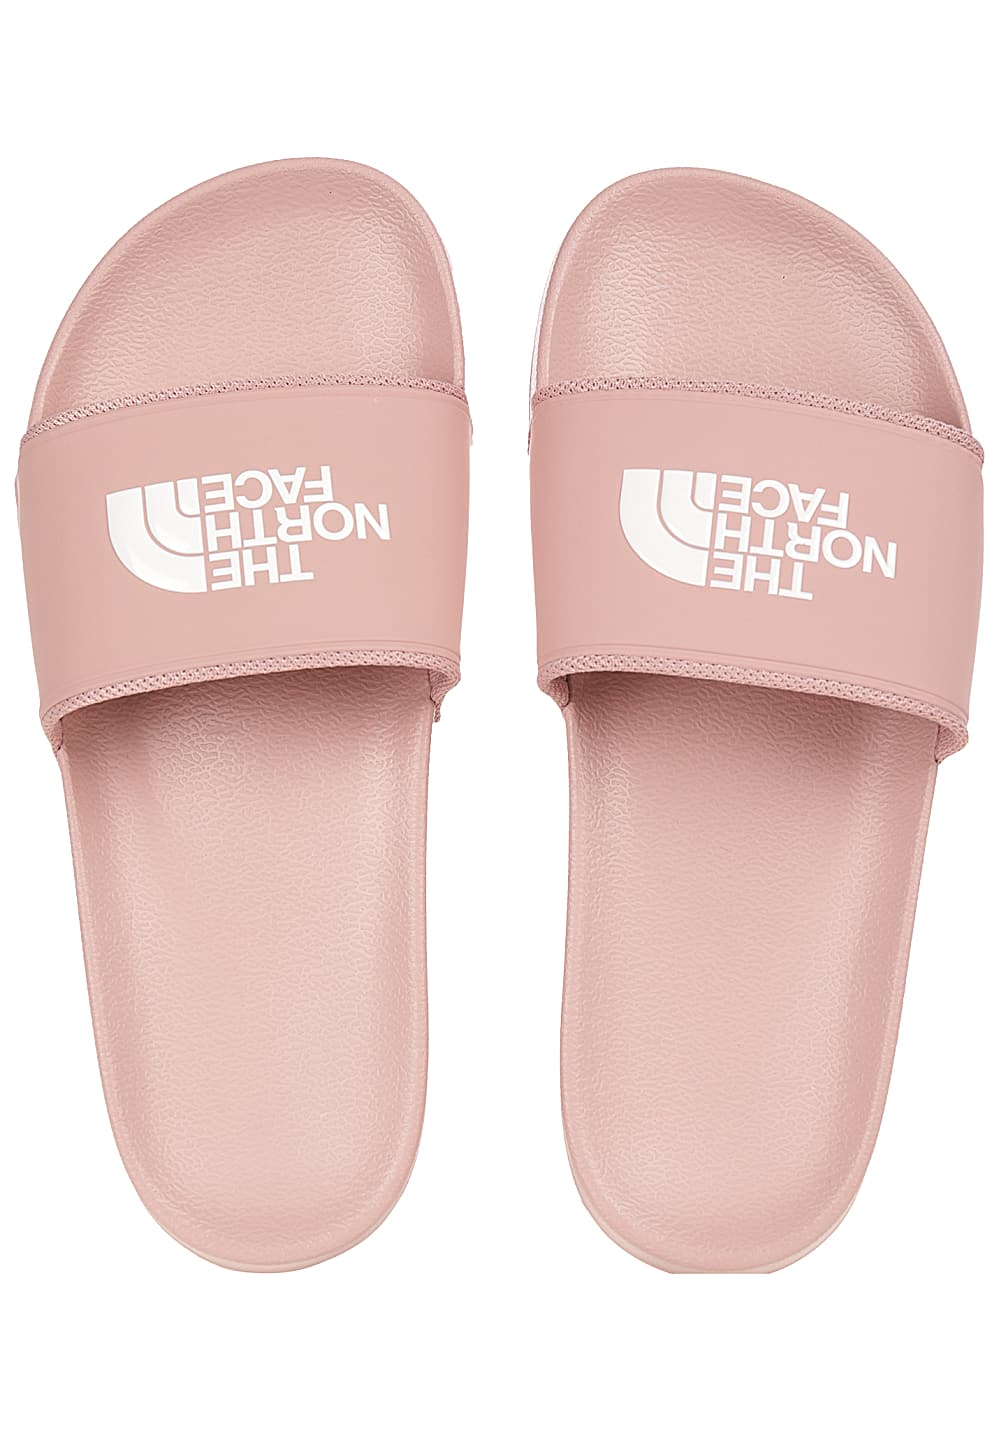 999daa747c THE NORTH FACE Base Camp Slide II - Sandalen für Damen - Pink - Planet  Sports